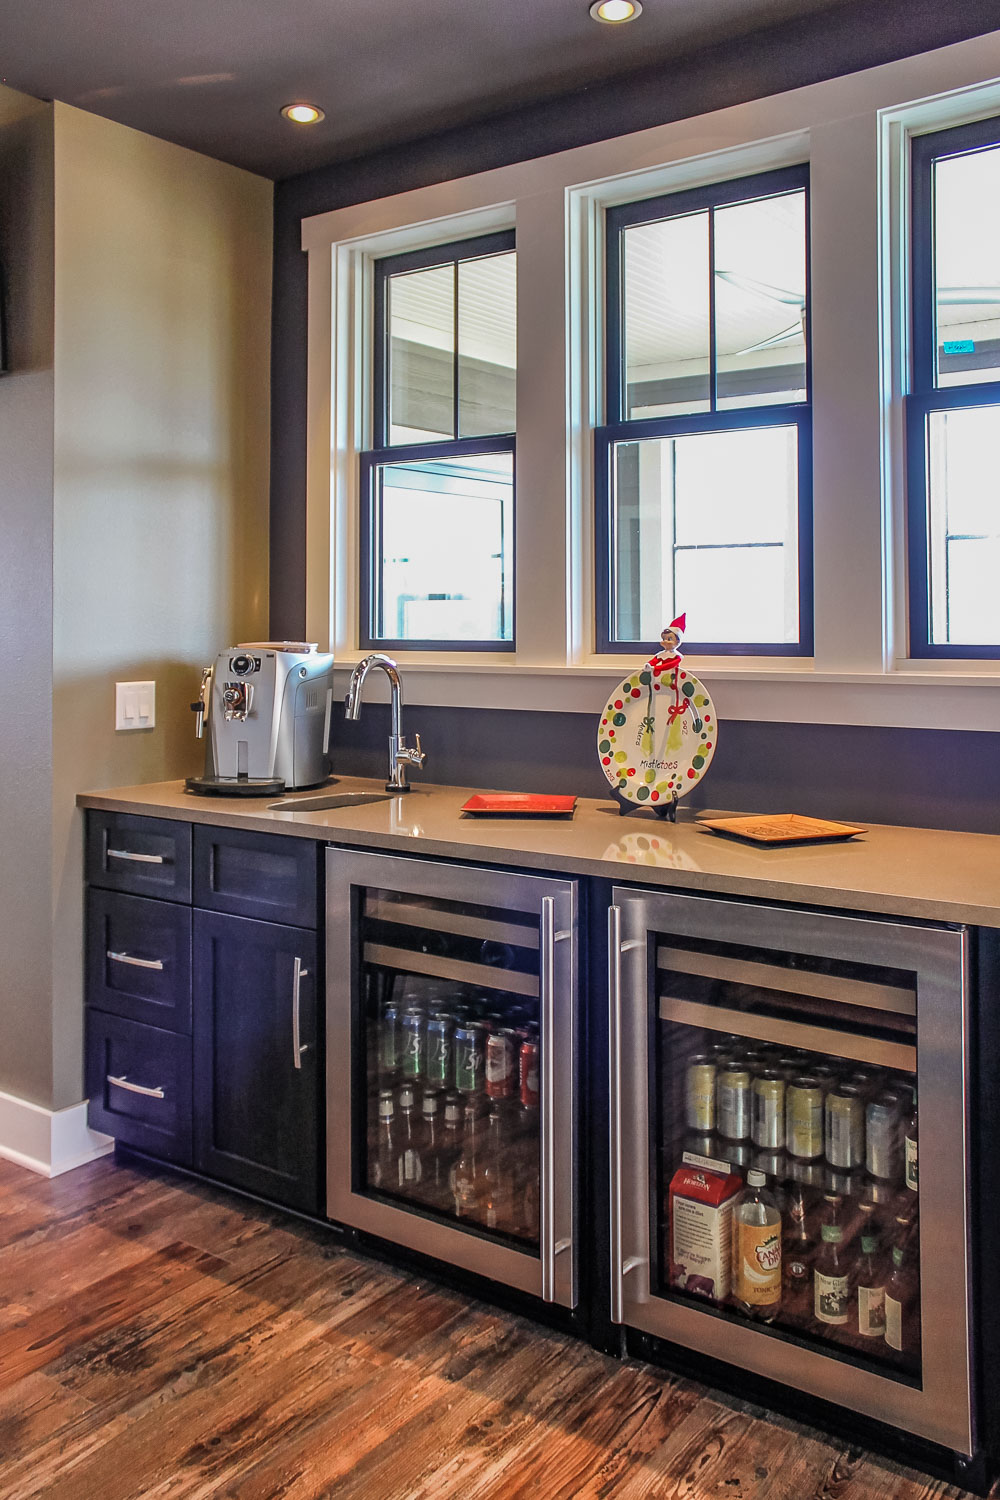 Kitchen Remodeling And Under Counter Refrigerators Or Freezers Degnan Design Build Remodel